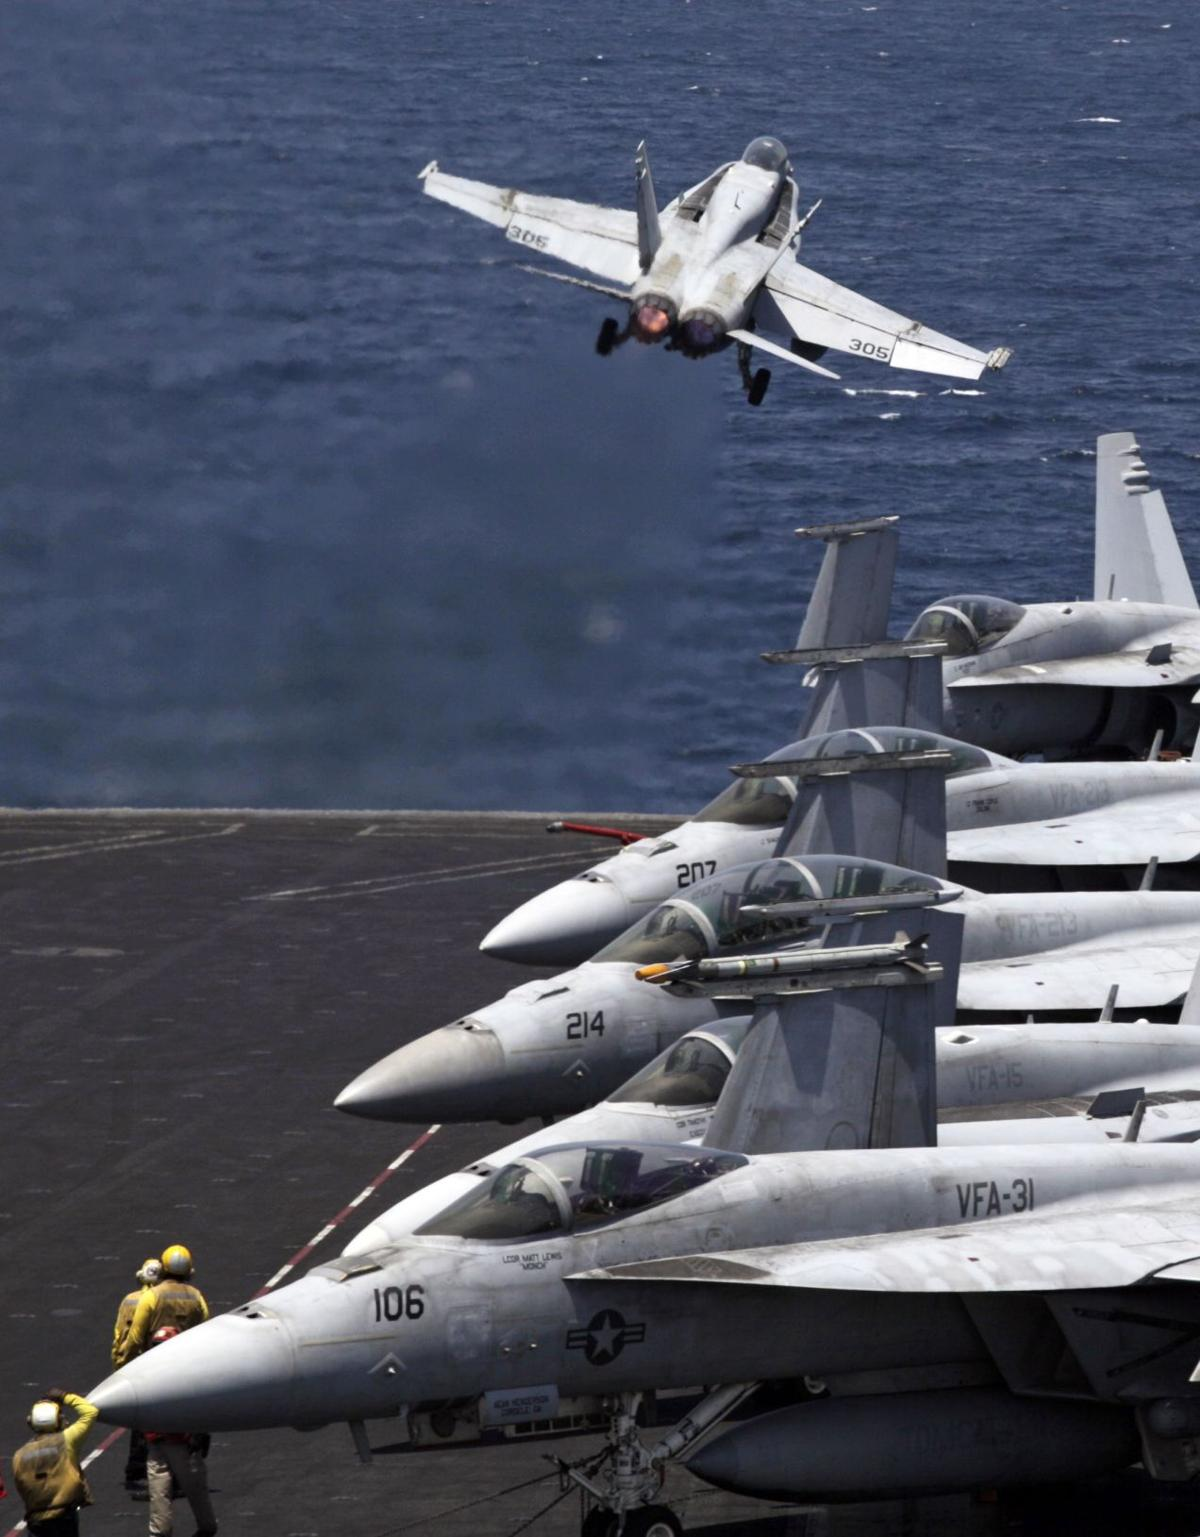 Indispensable mission: Keeping the U.S. Navy ready